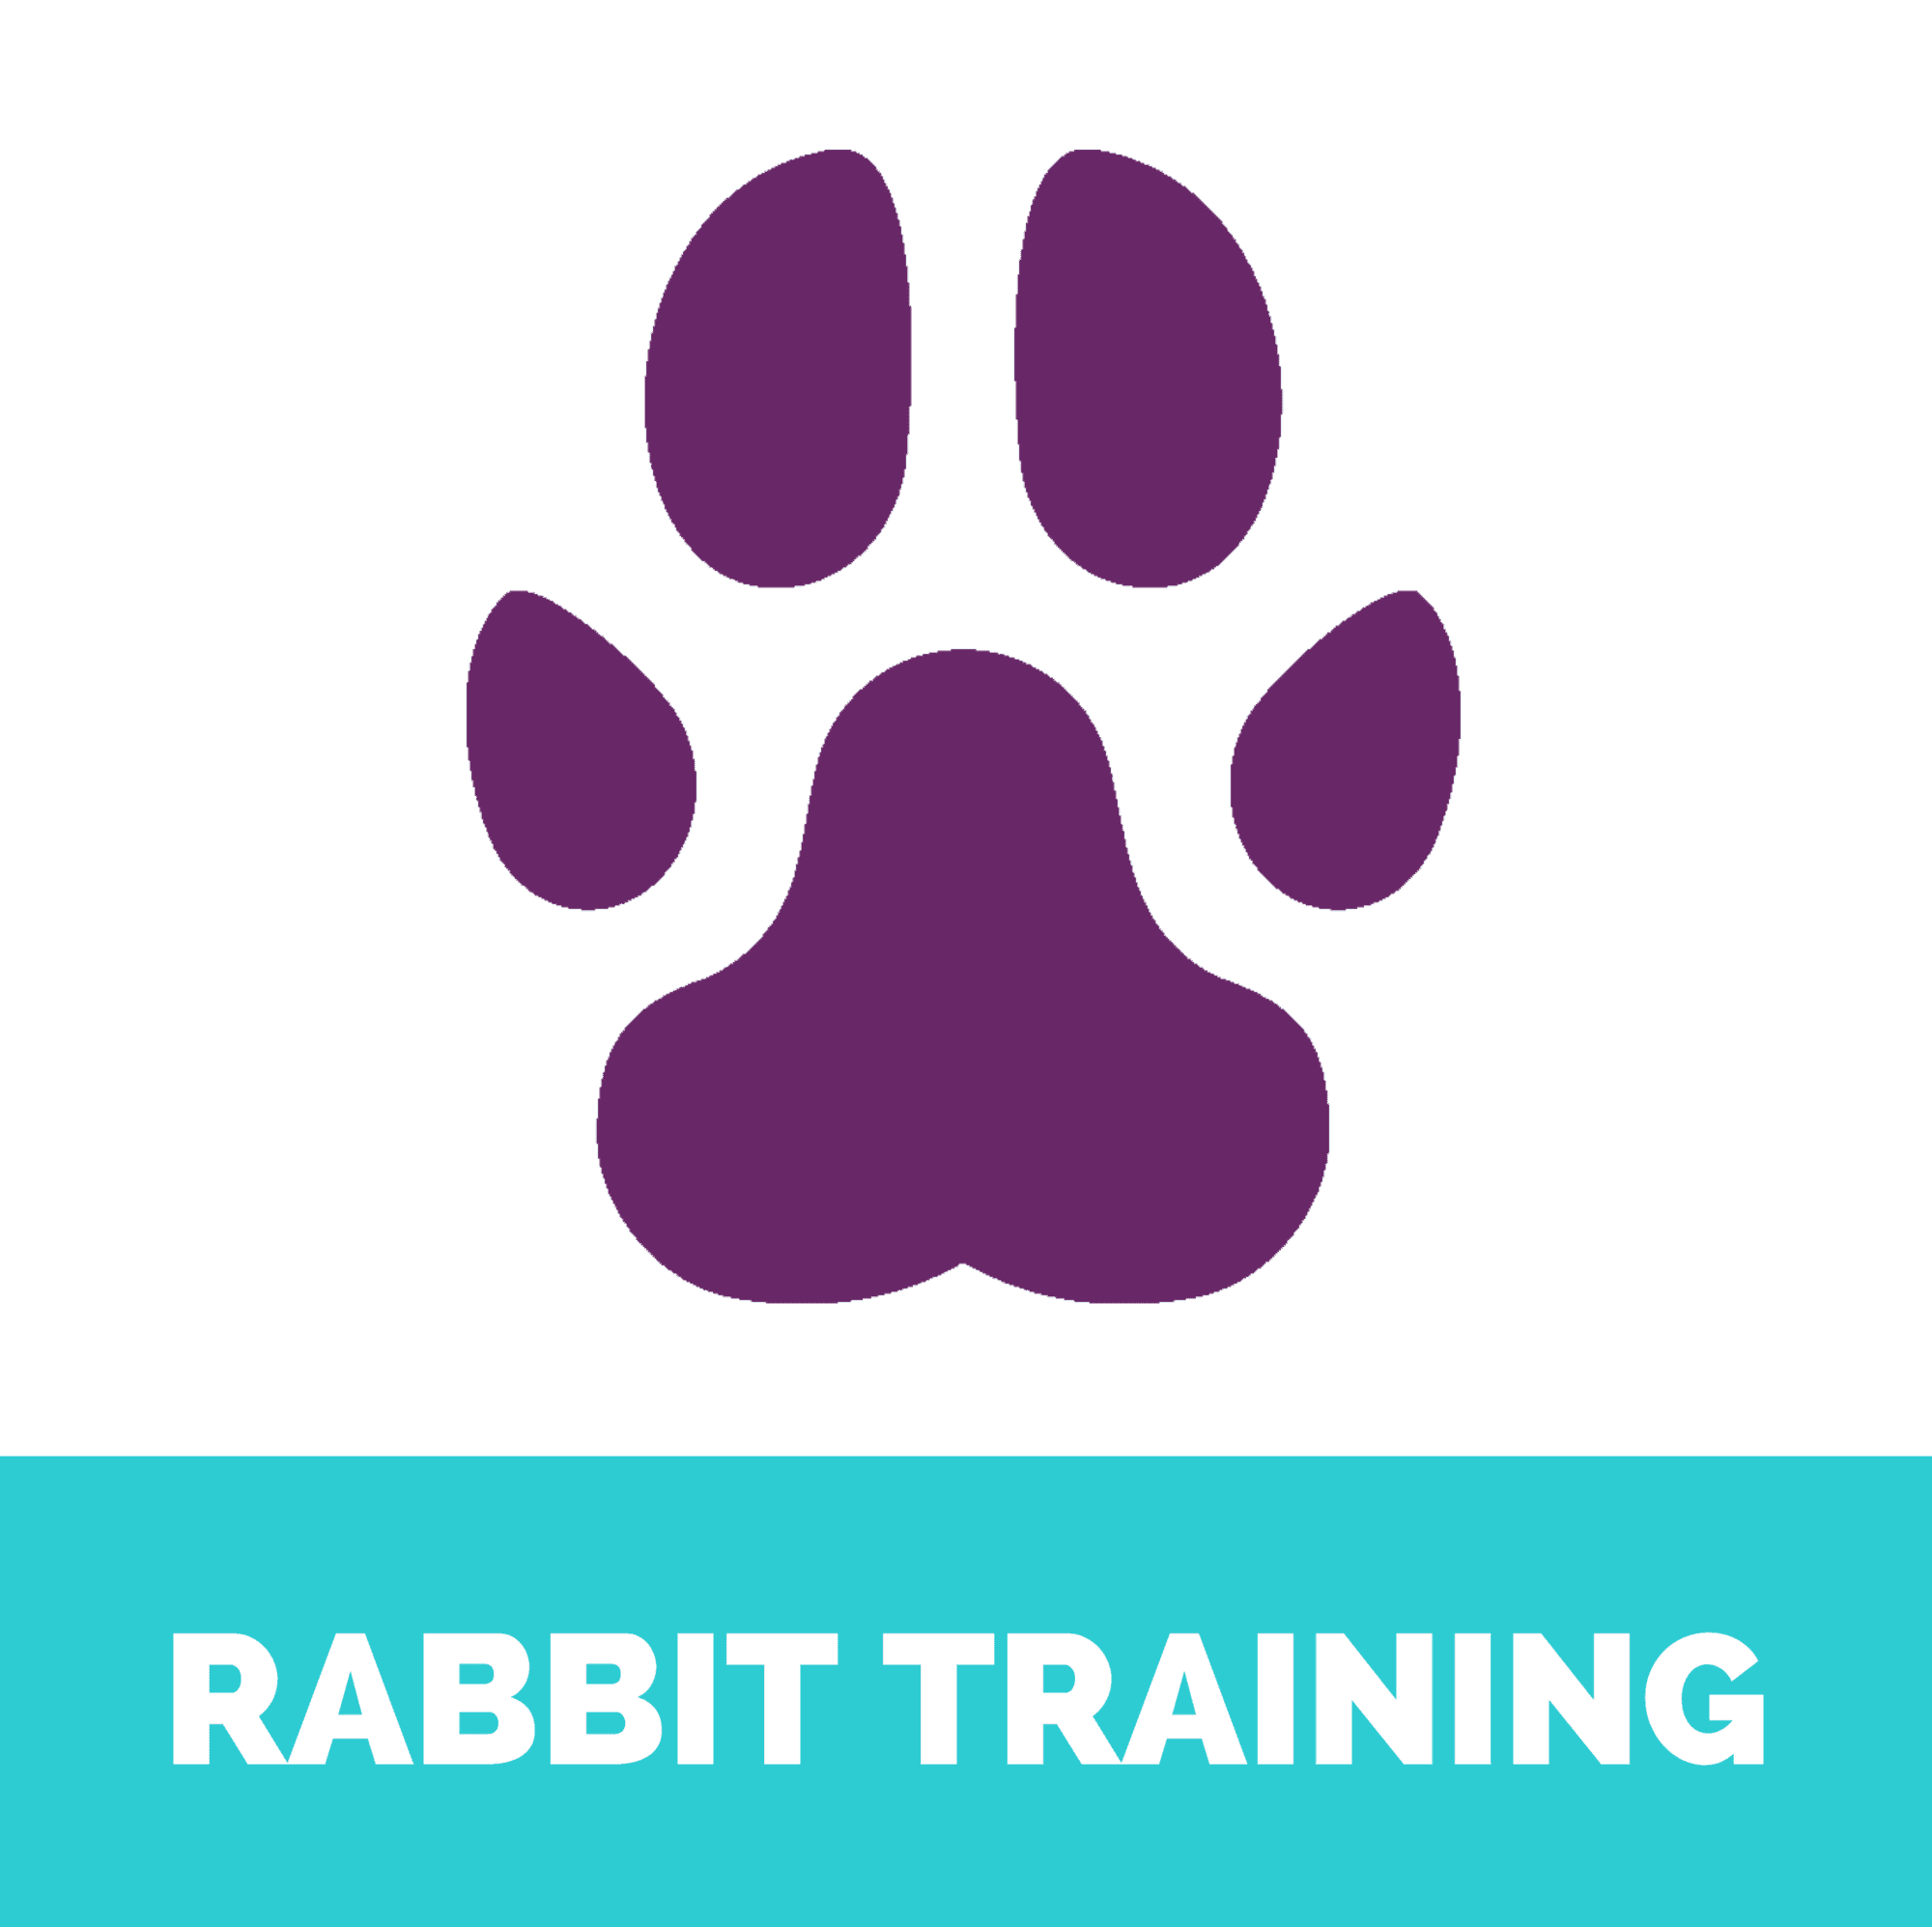 Rabbit training